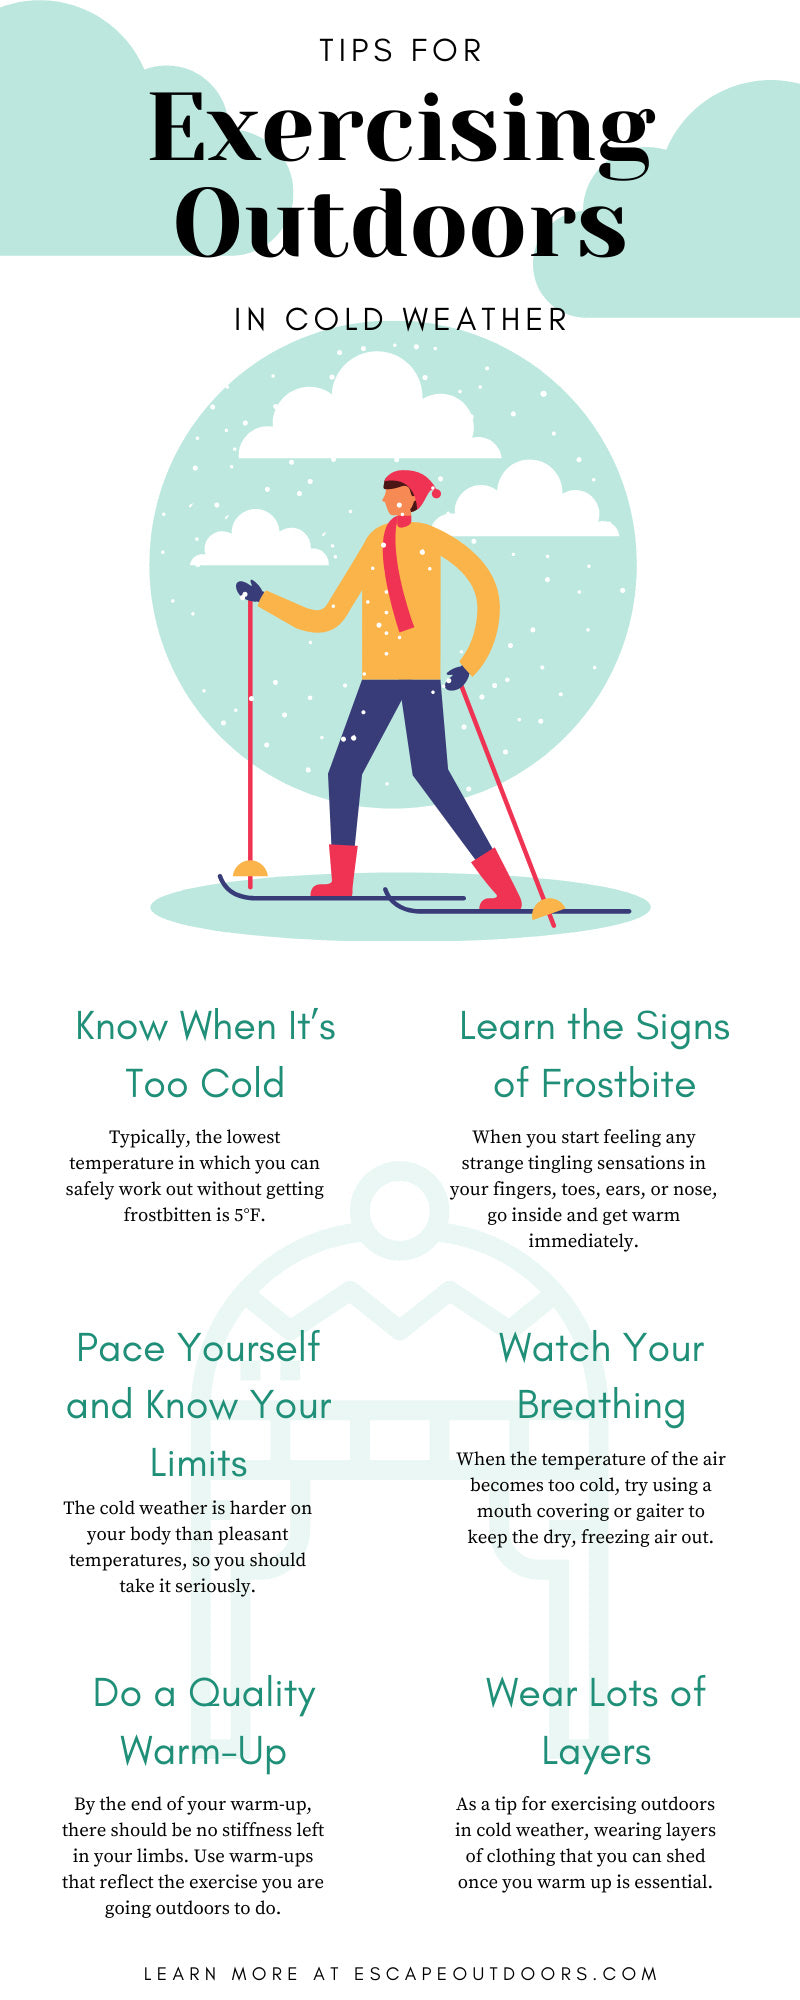 Tips for Exercising Outdoors in Cold Weather